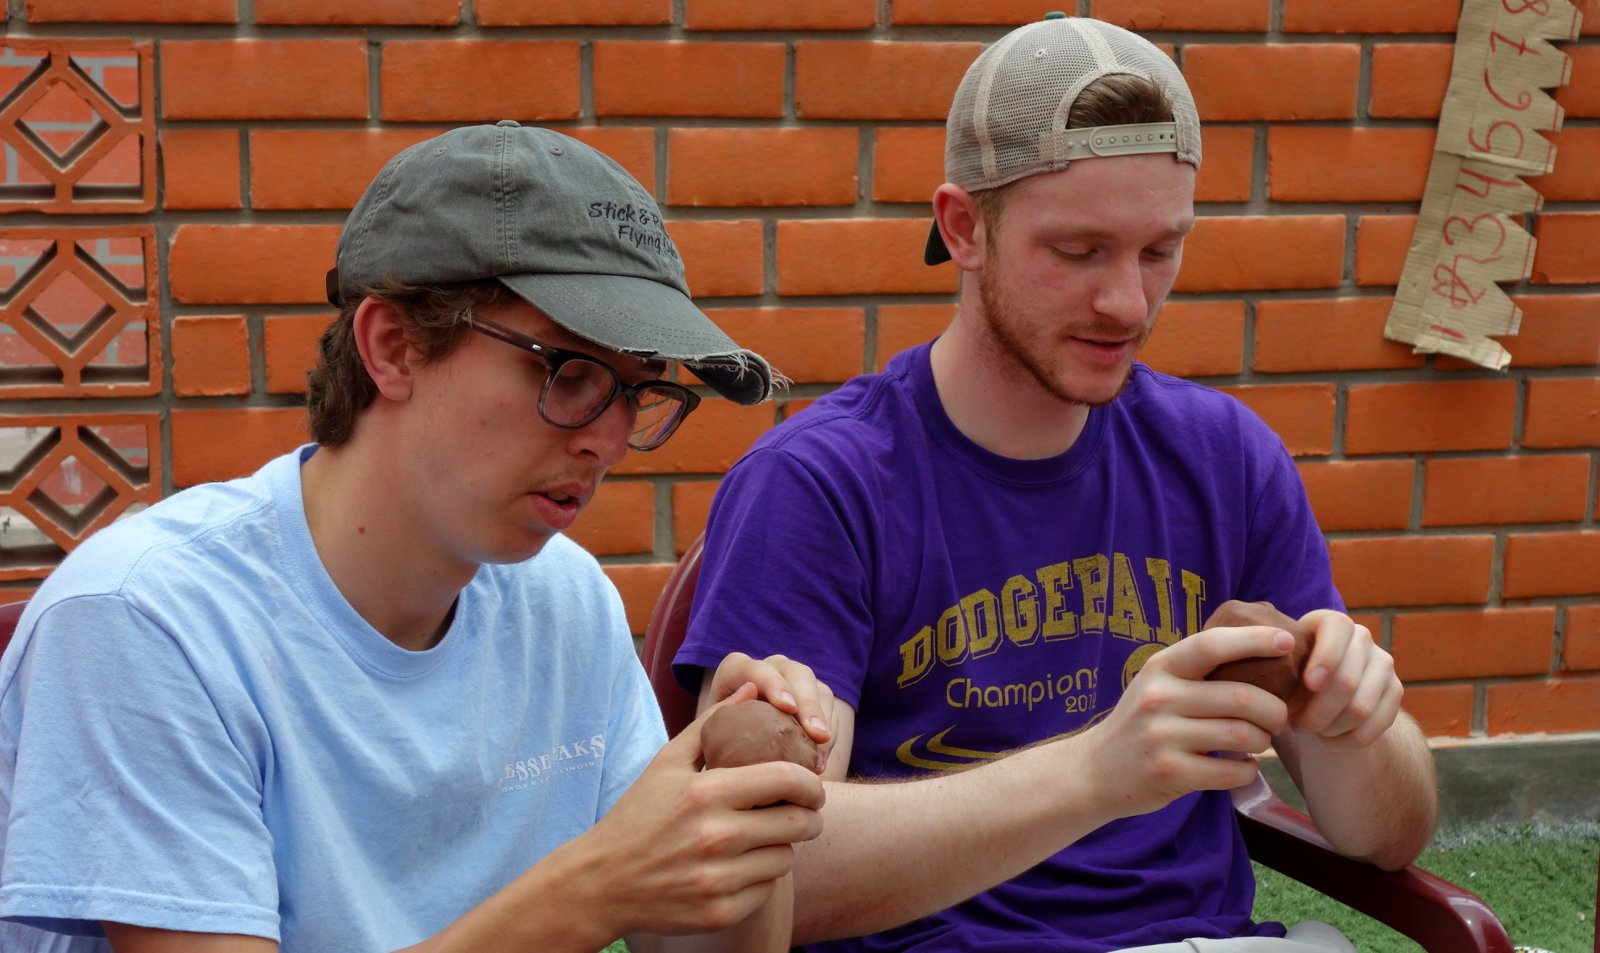 Goshen Student, Isaac Longenecker, pictured on the left, visits Manos Amigas in Peru.